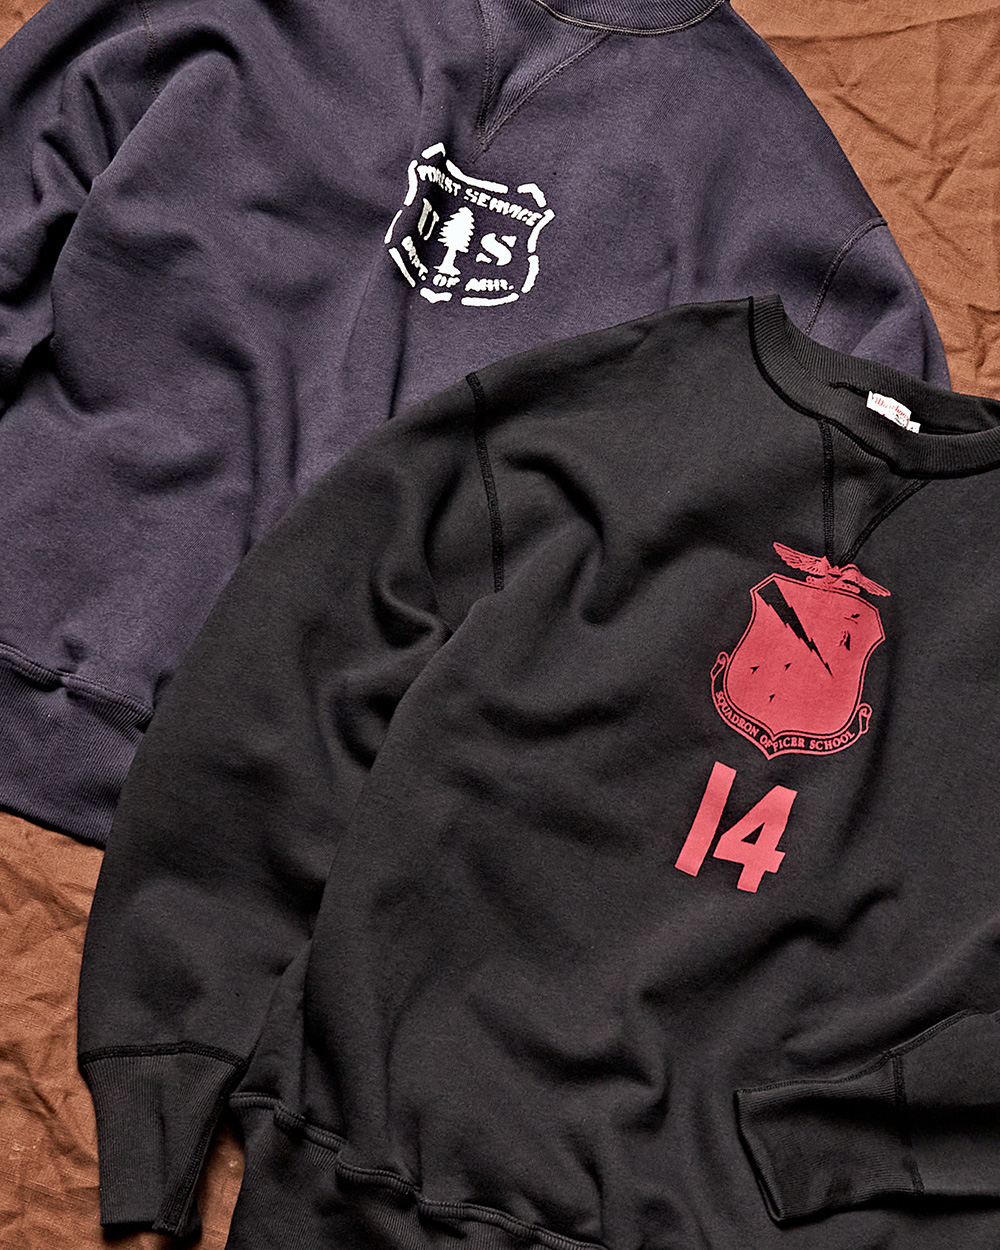 [WAREHOUSE] USA 1930S VINTAGE SWEAT SHIRTS